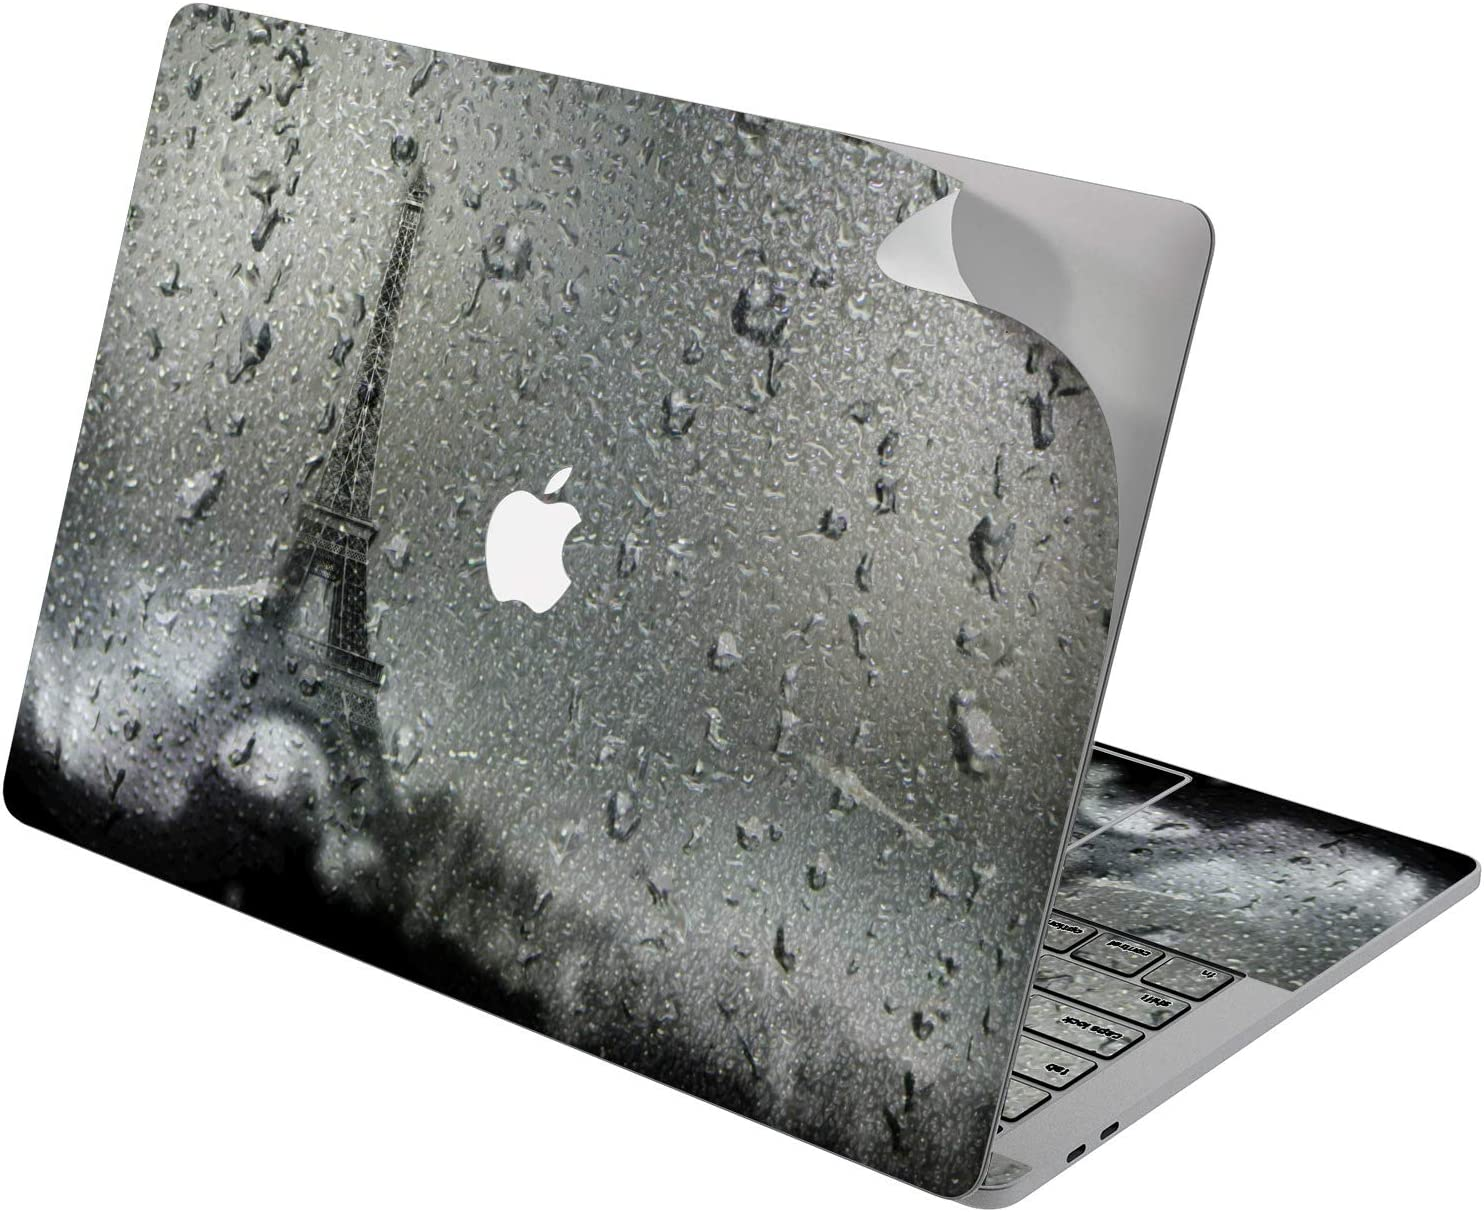 "Cavka Vinyl Decal Skin for Apple MacBook Pro 13"" 2019 15"" 2018 Air 13"" 2020 Retina 2015 Mac 11"" Mac 12"" Cover Paris Rainy Landmark Protective Print Laptop Sticker Raindrops Tower Eiffel Design Window"